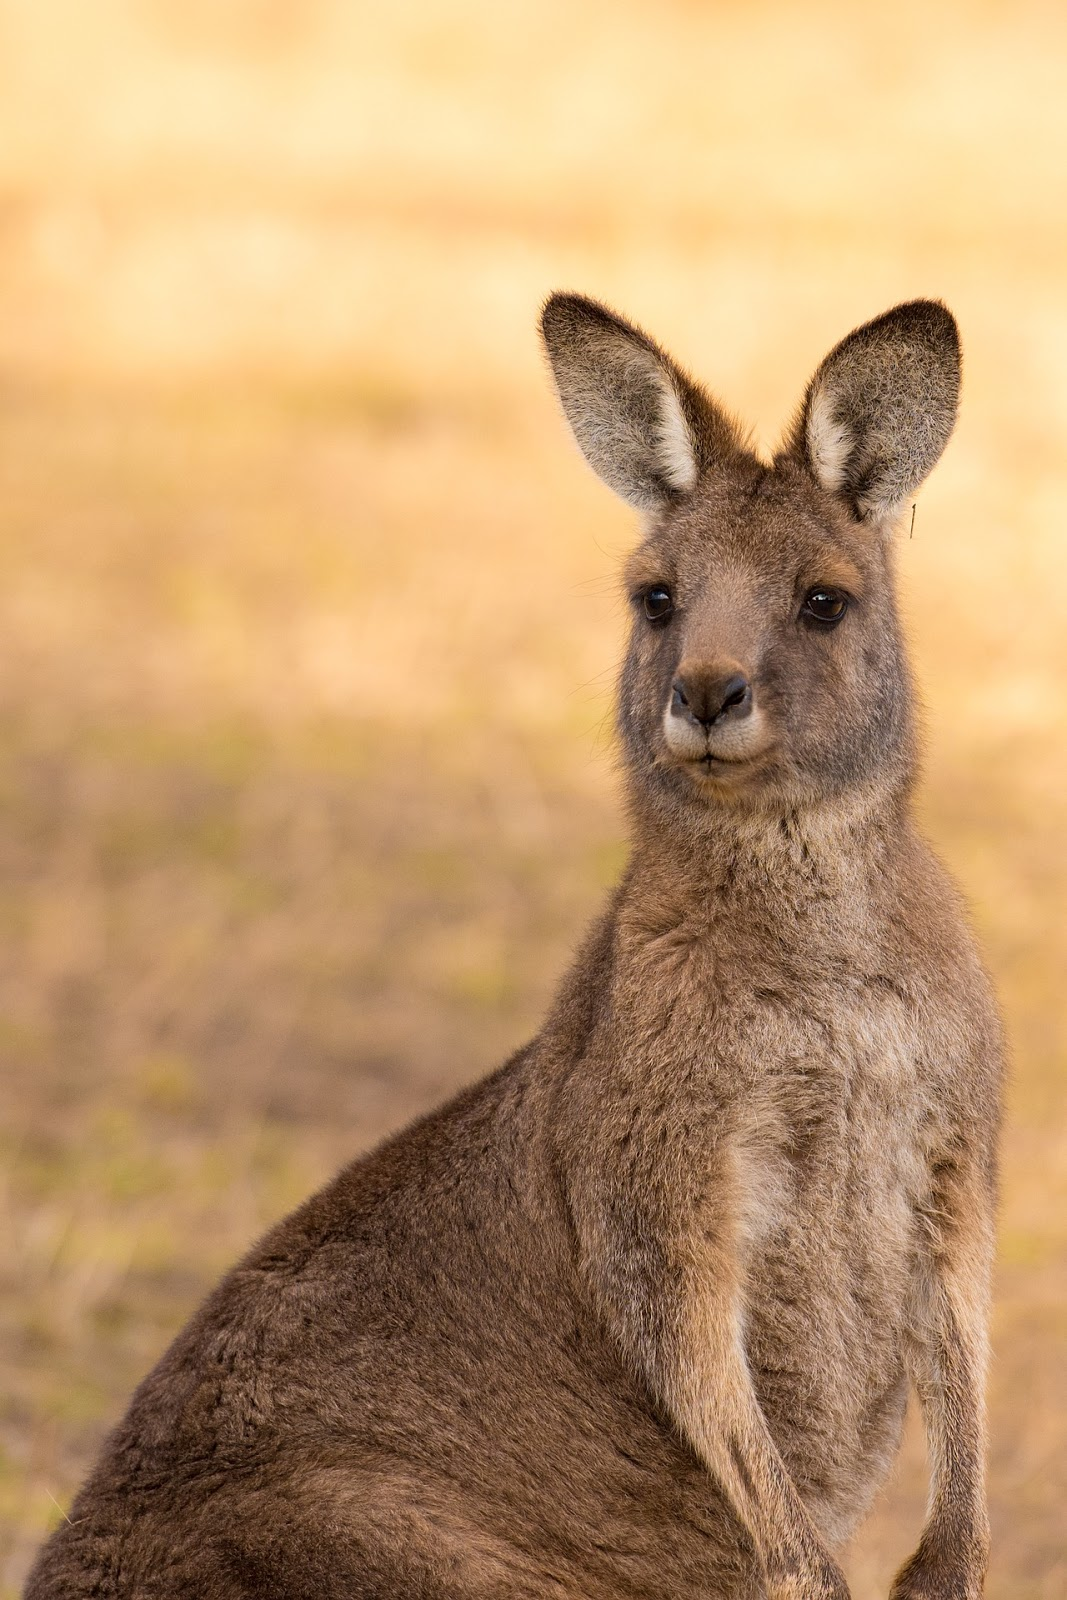 Picture of a kangaroo.